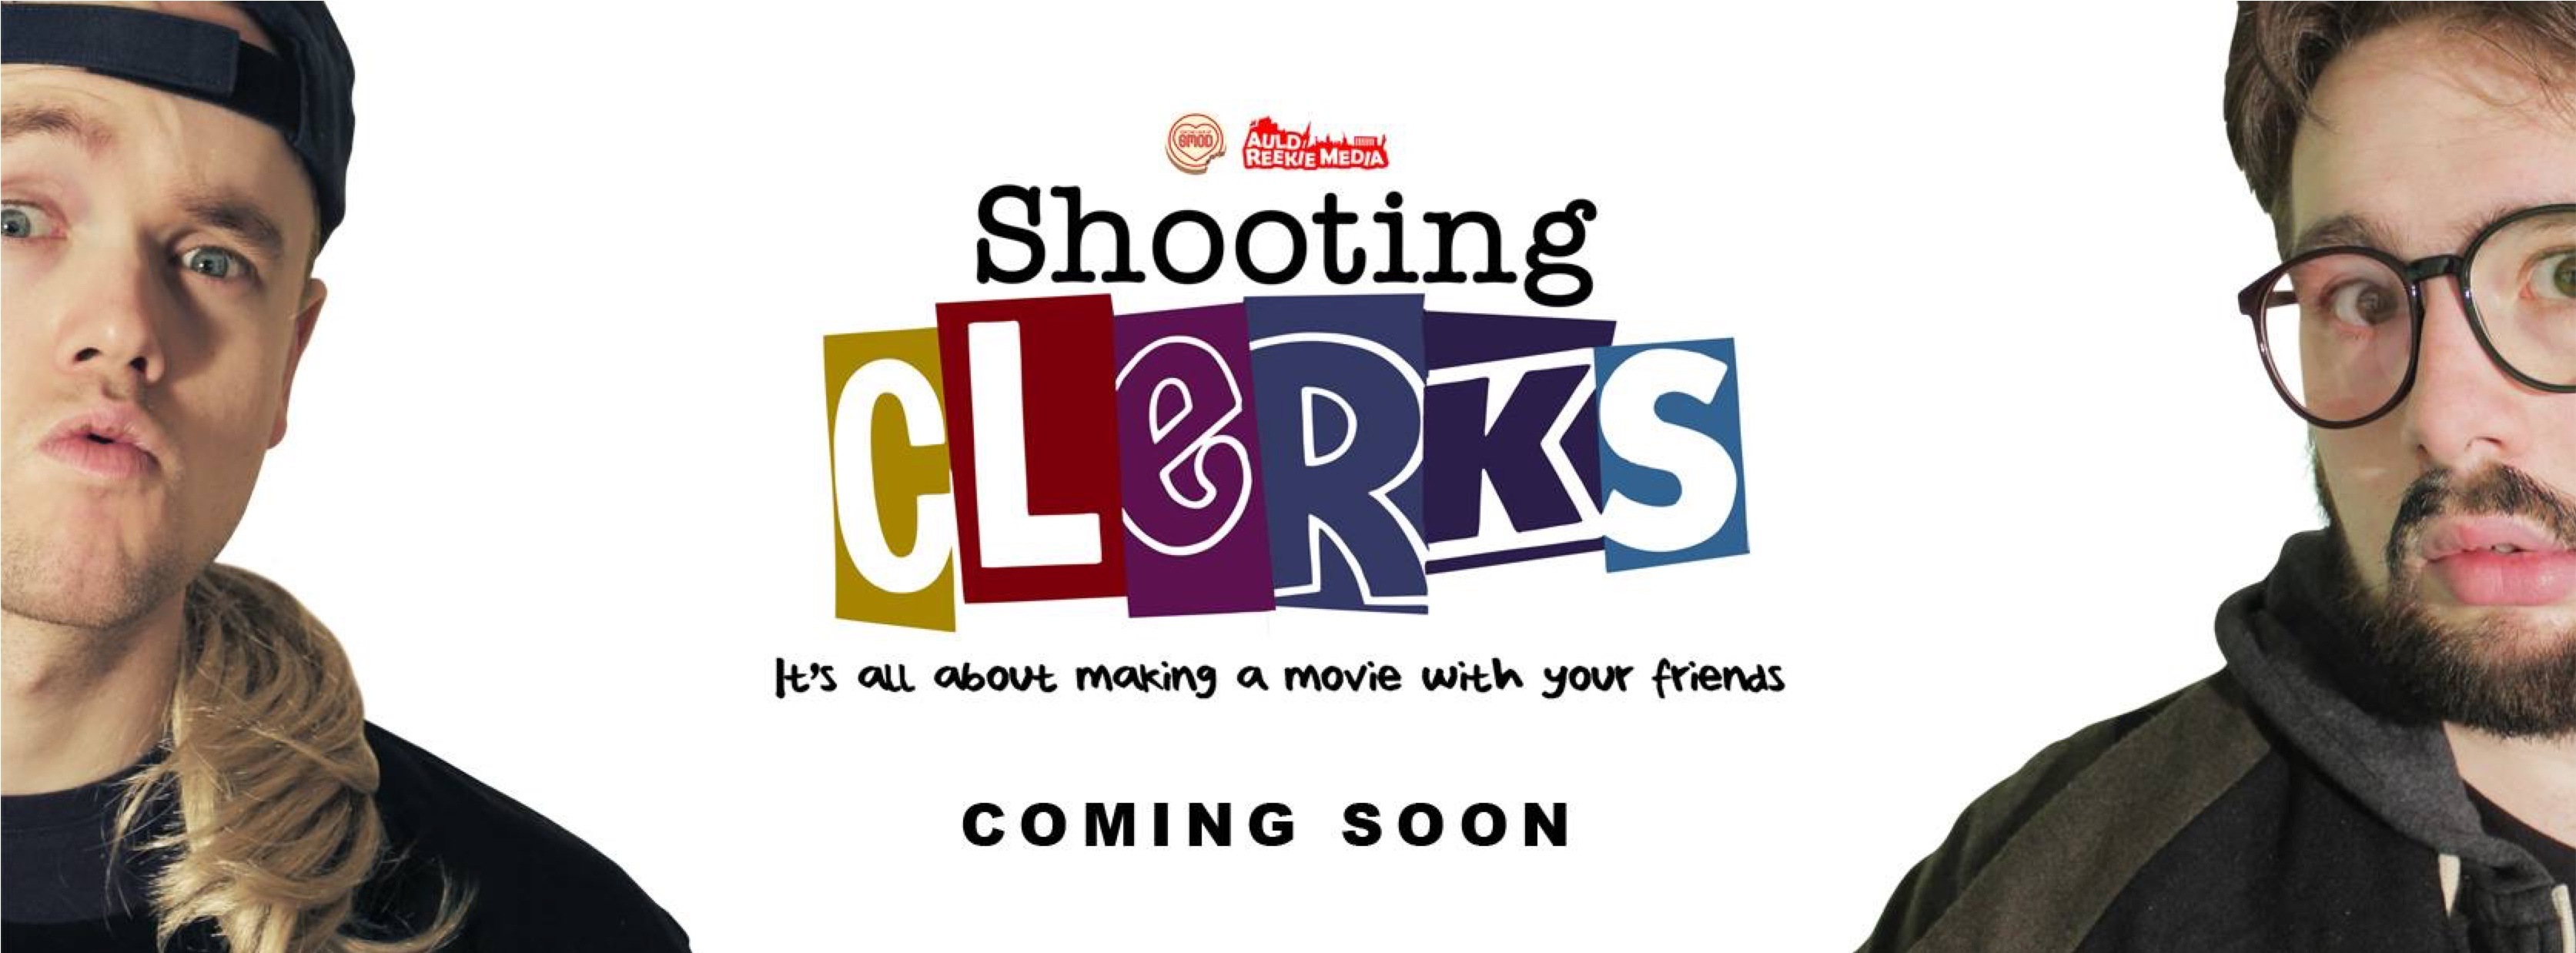 Calendar Art Peter Rolfe : Shooting clerks